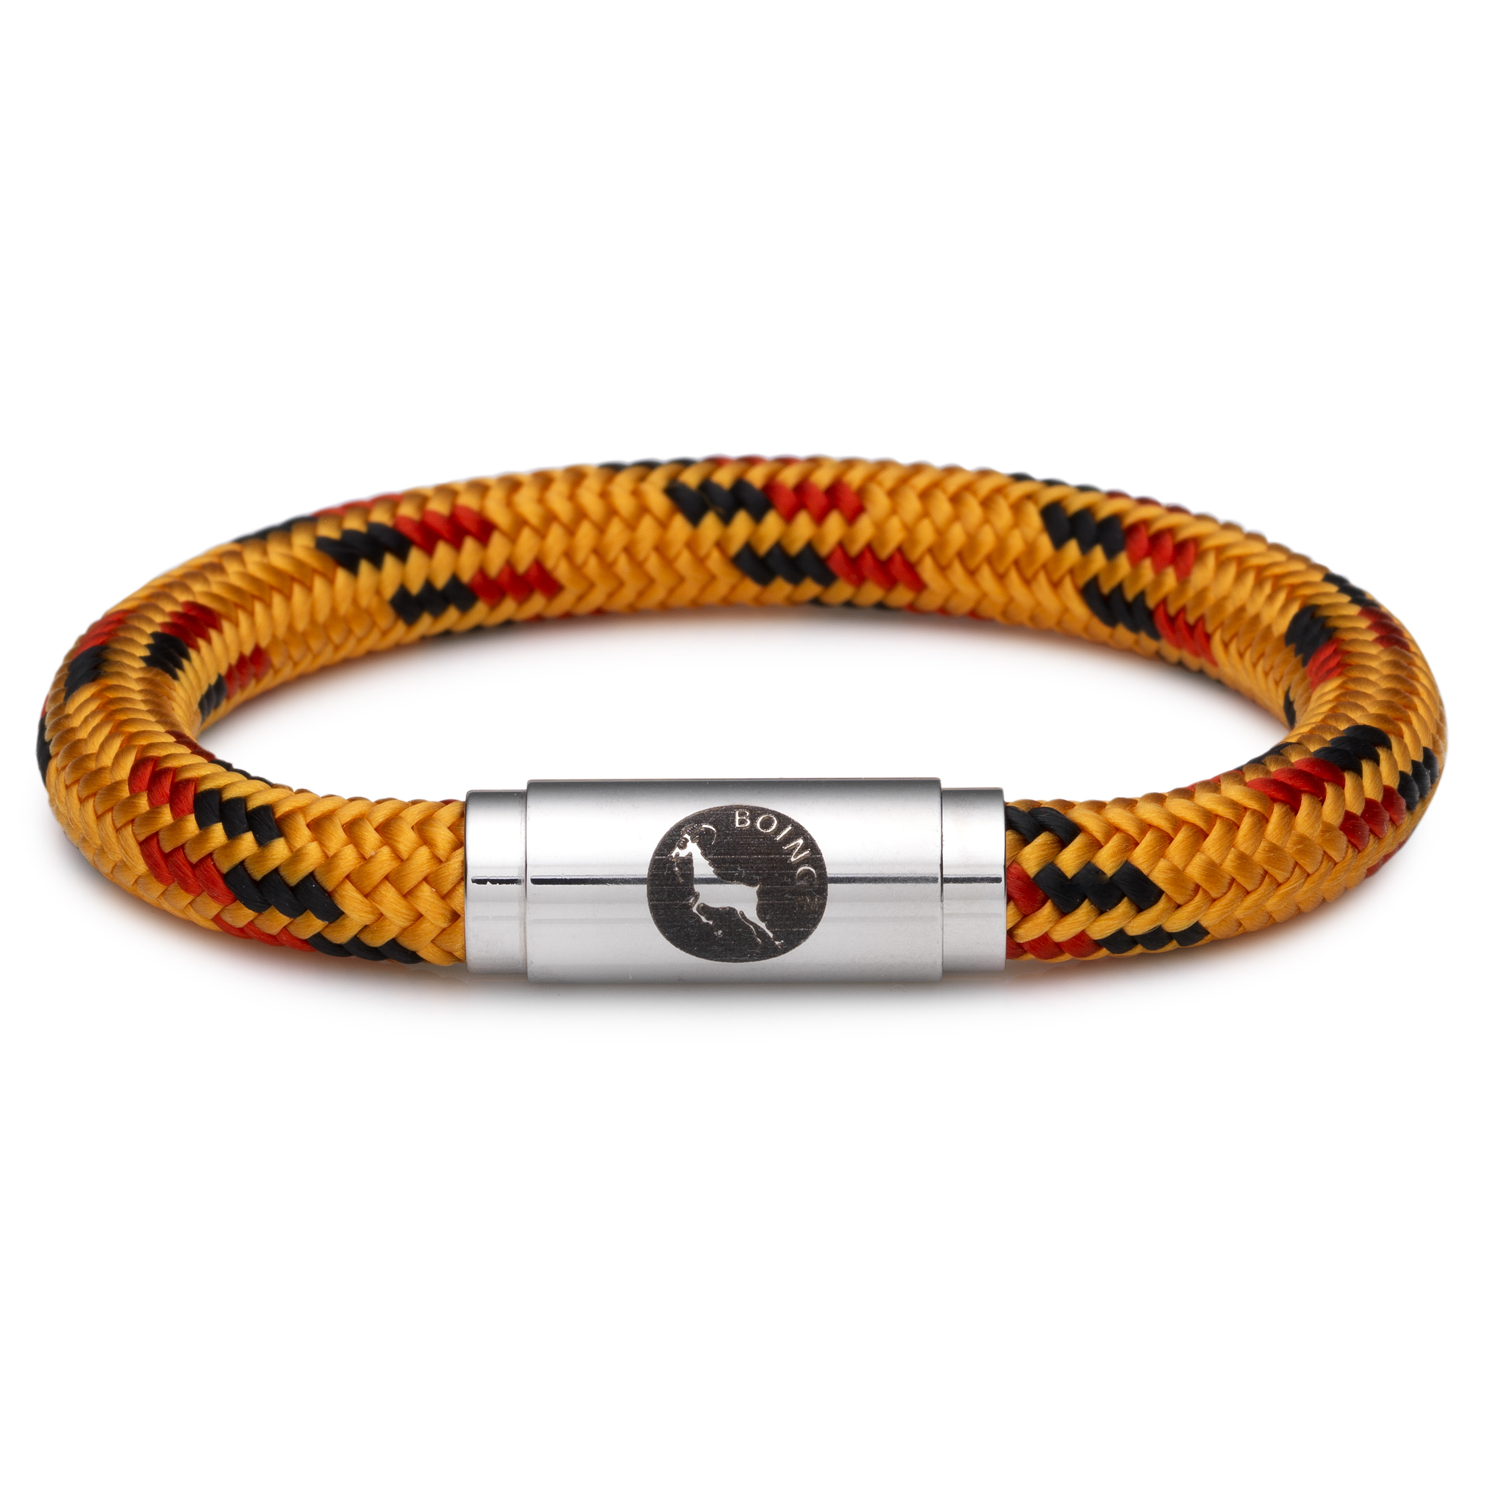 Boing – Middy XLarge Wristband in Sunset